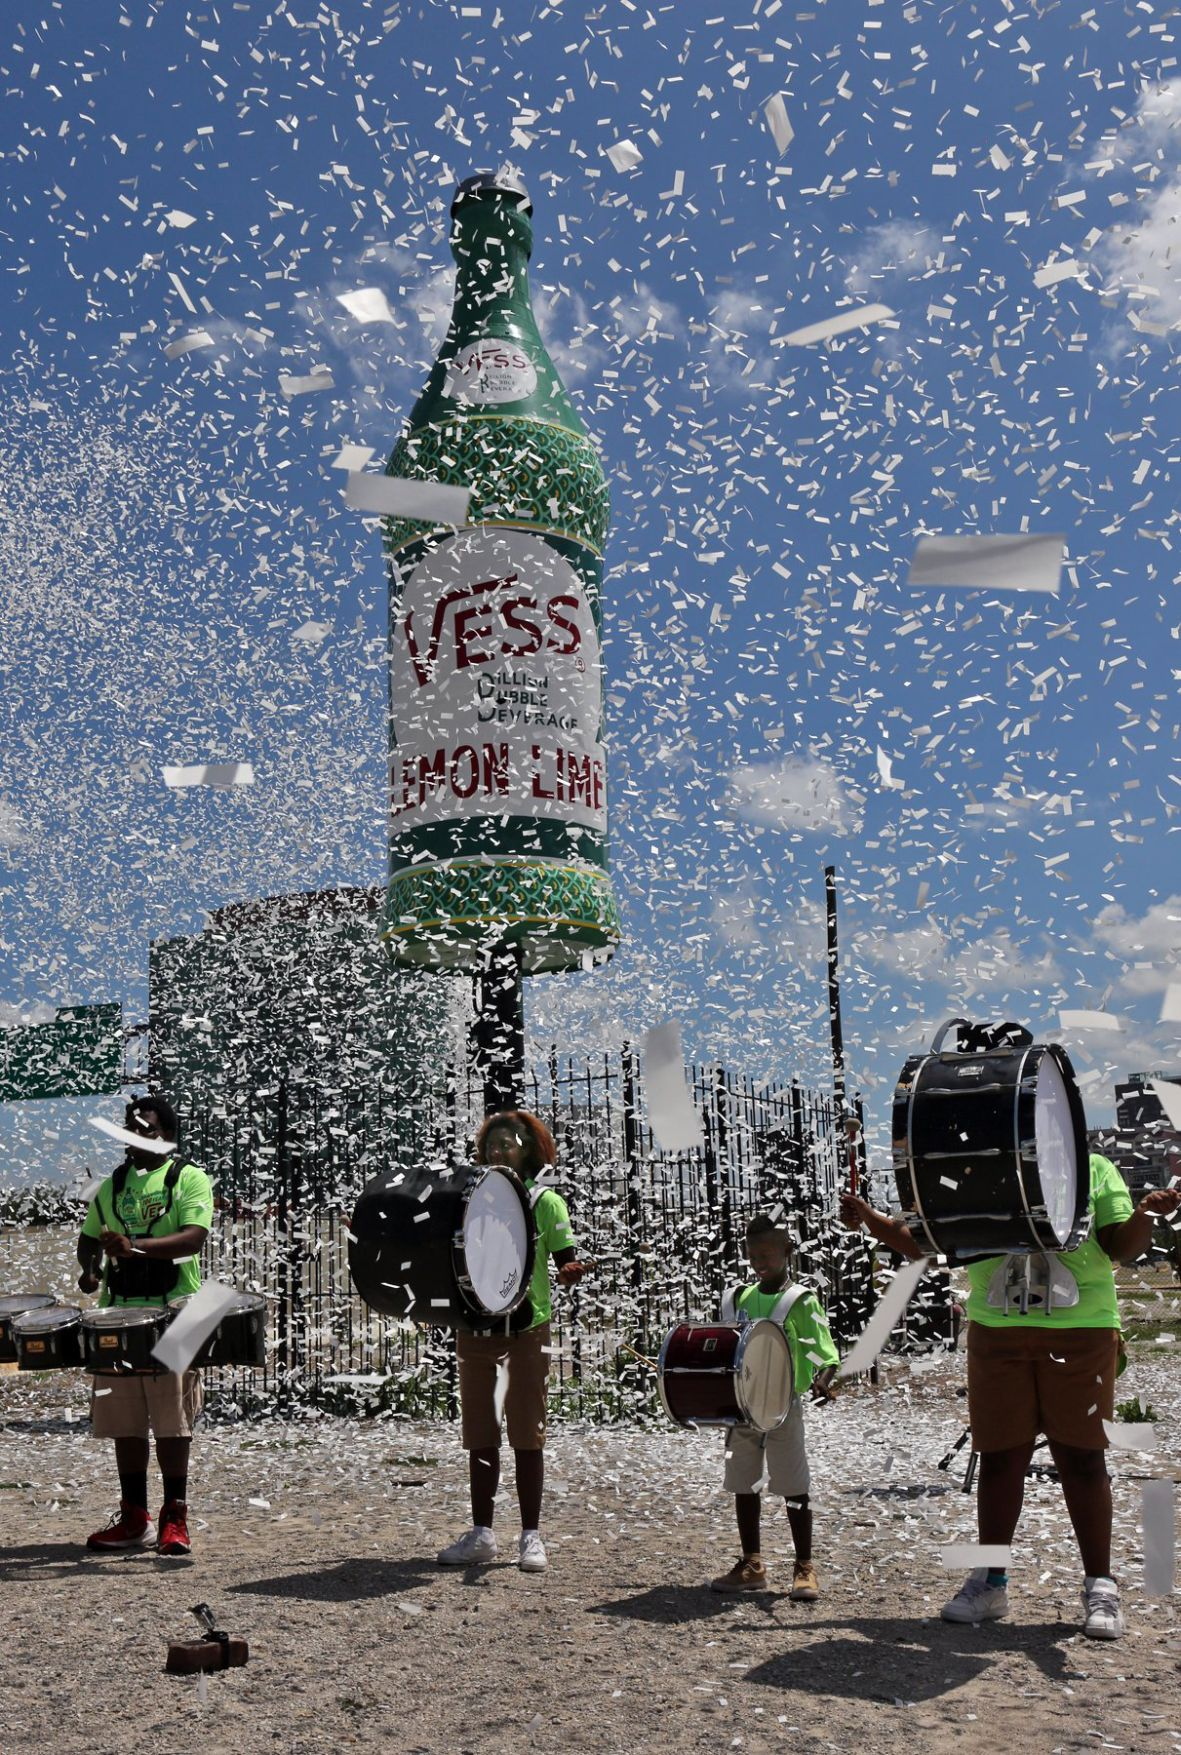 Iconic Vess Bottle restored in downtown St. Louis